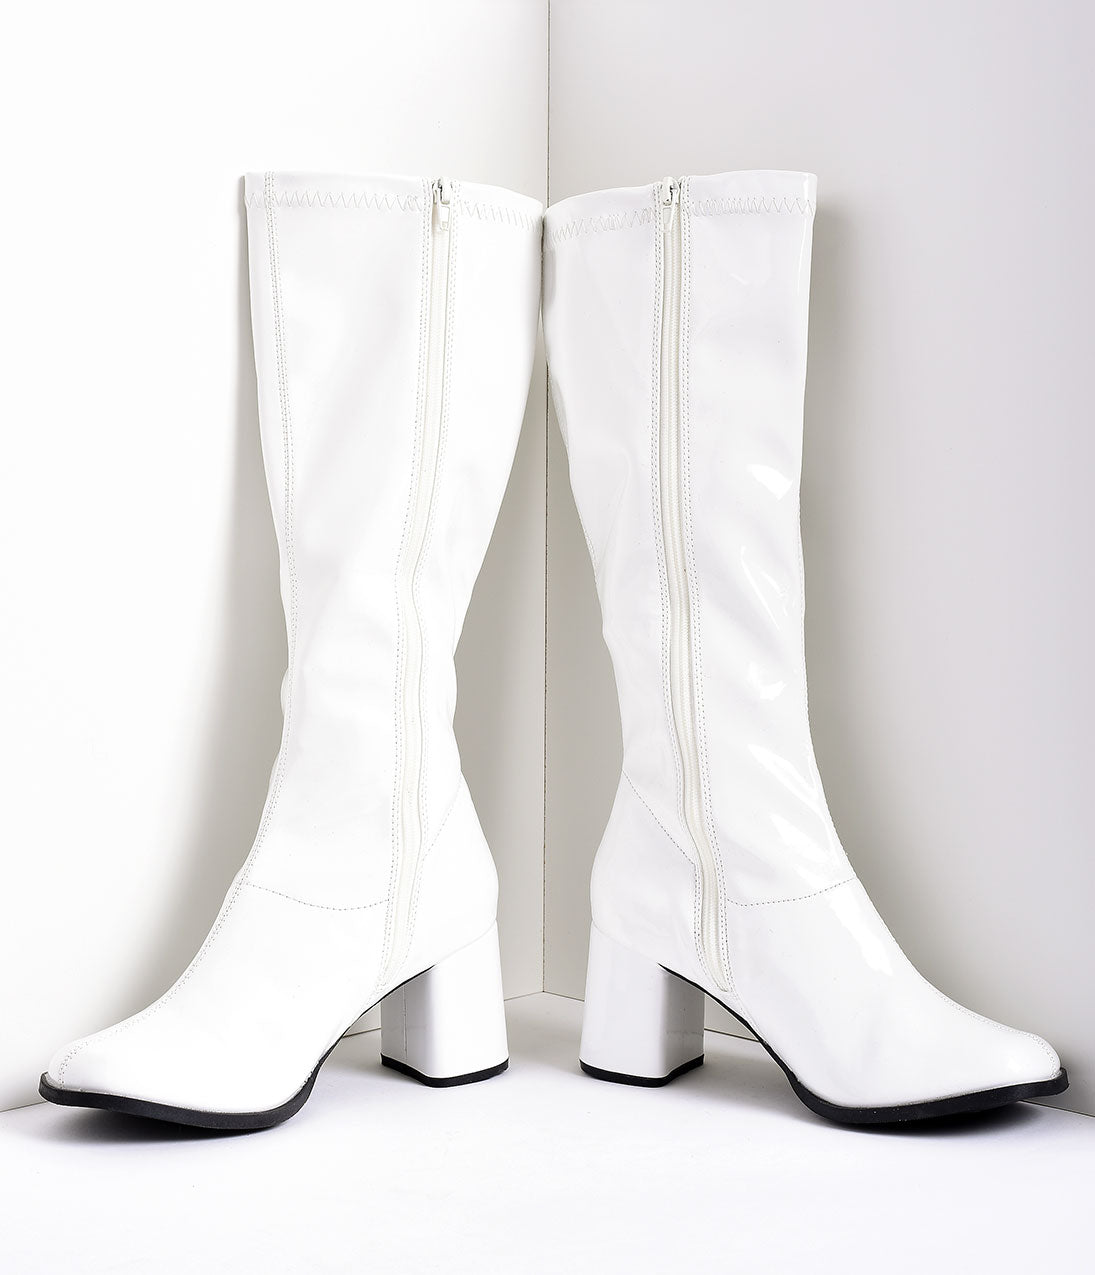 Vintage Style Shoes, Vintage Inspired Shoes White Stretch Patent Knee High Go Go Boots $58.00 AT vintagedancer.com